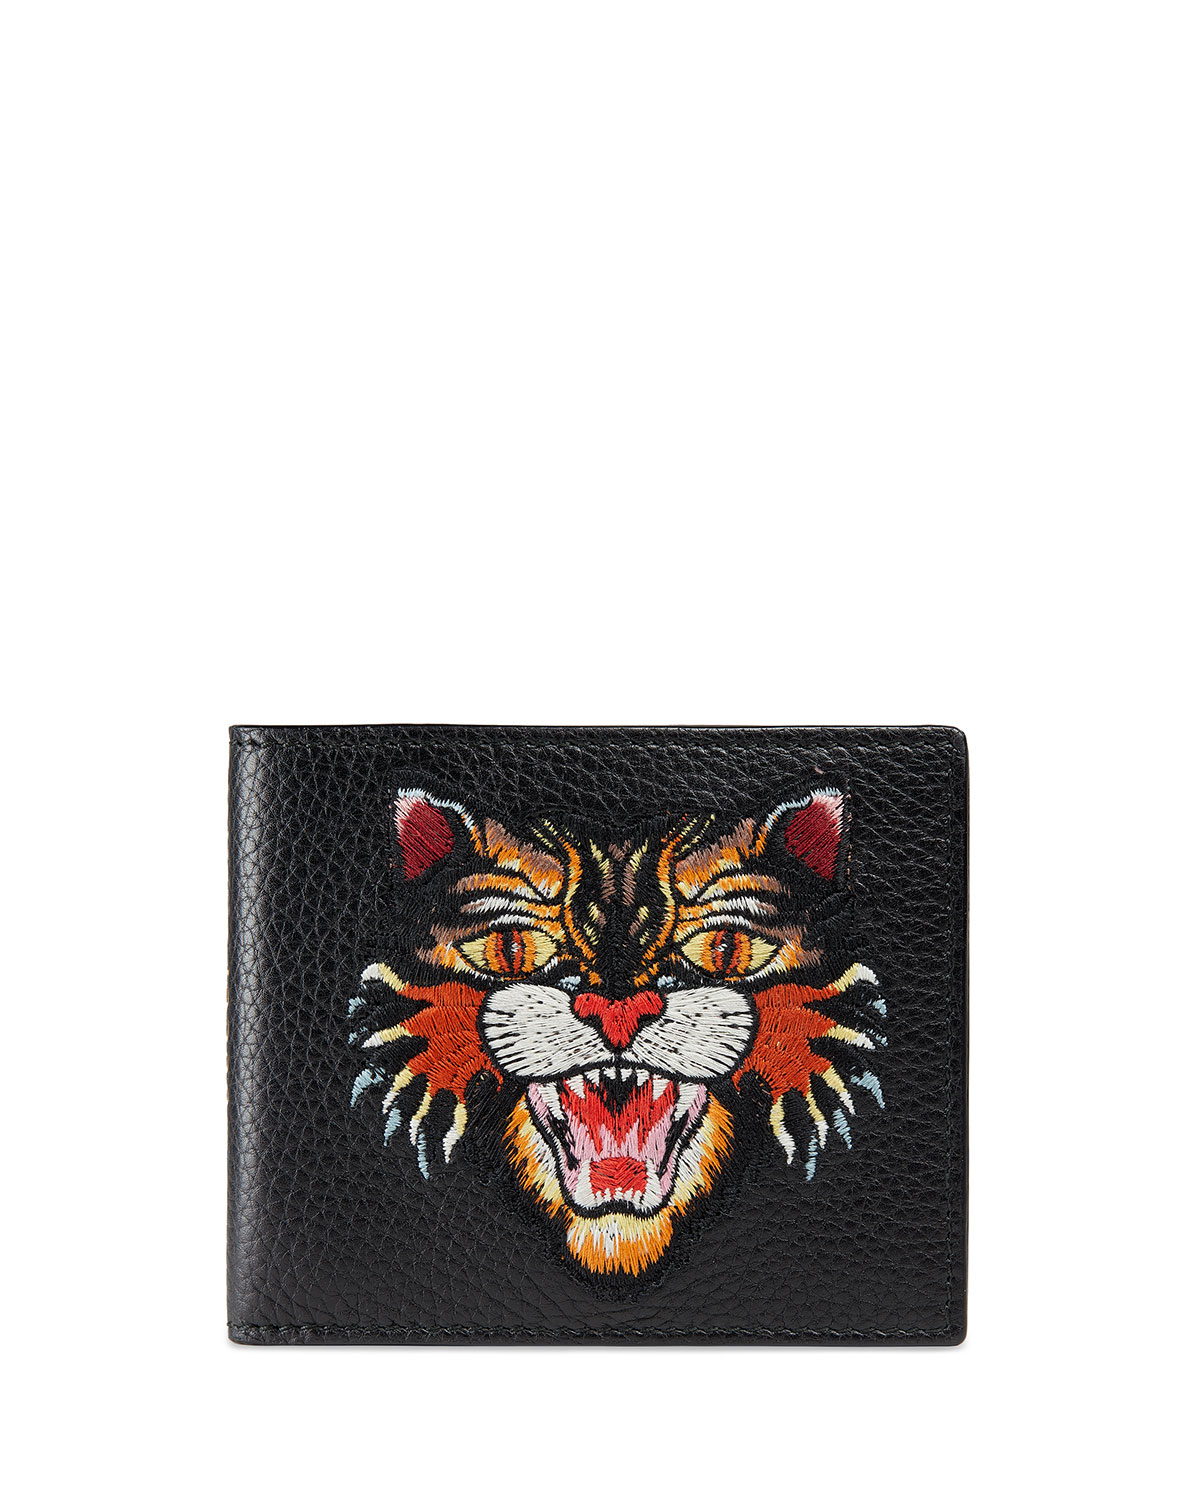 79b4739bc3dc Gucci Angry Cat Embroidered Leather Wallet, Black | Neiman Marcus